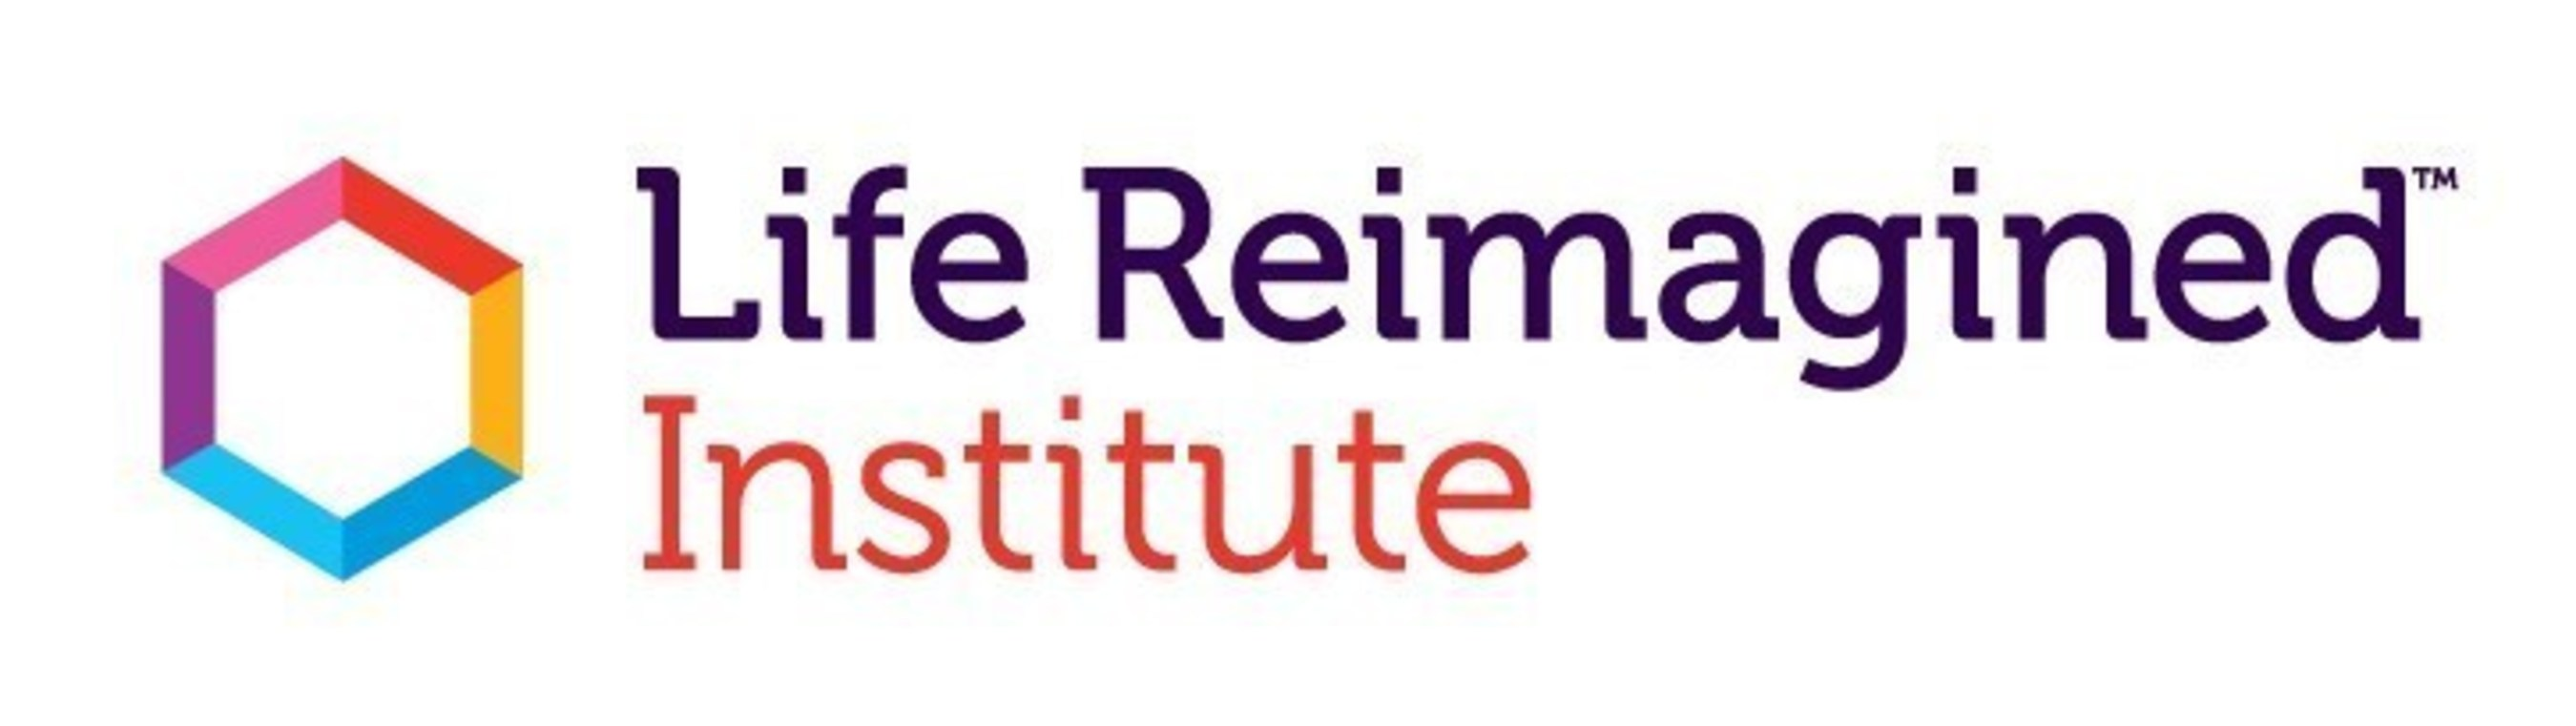 Life Reimagined Institute Seeks Inaugural Class of Rand Fellows